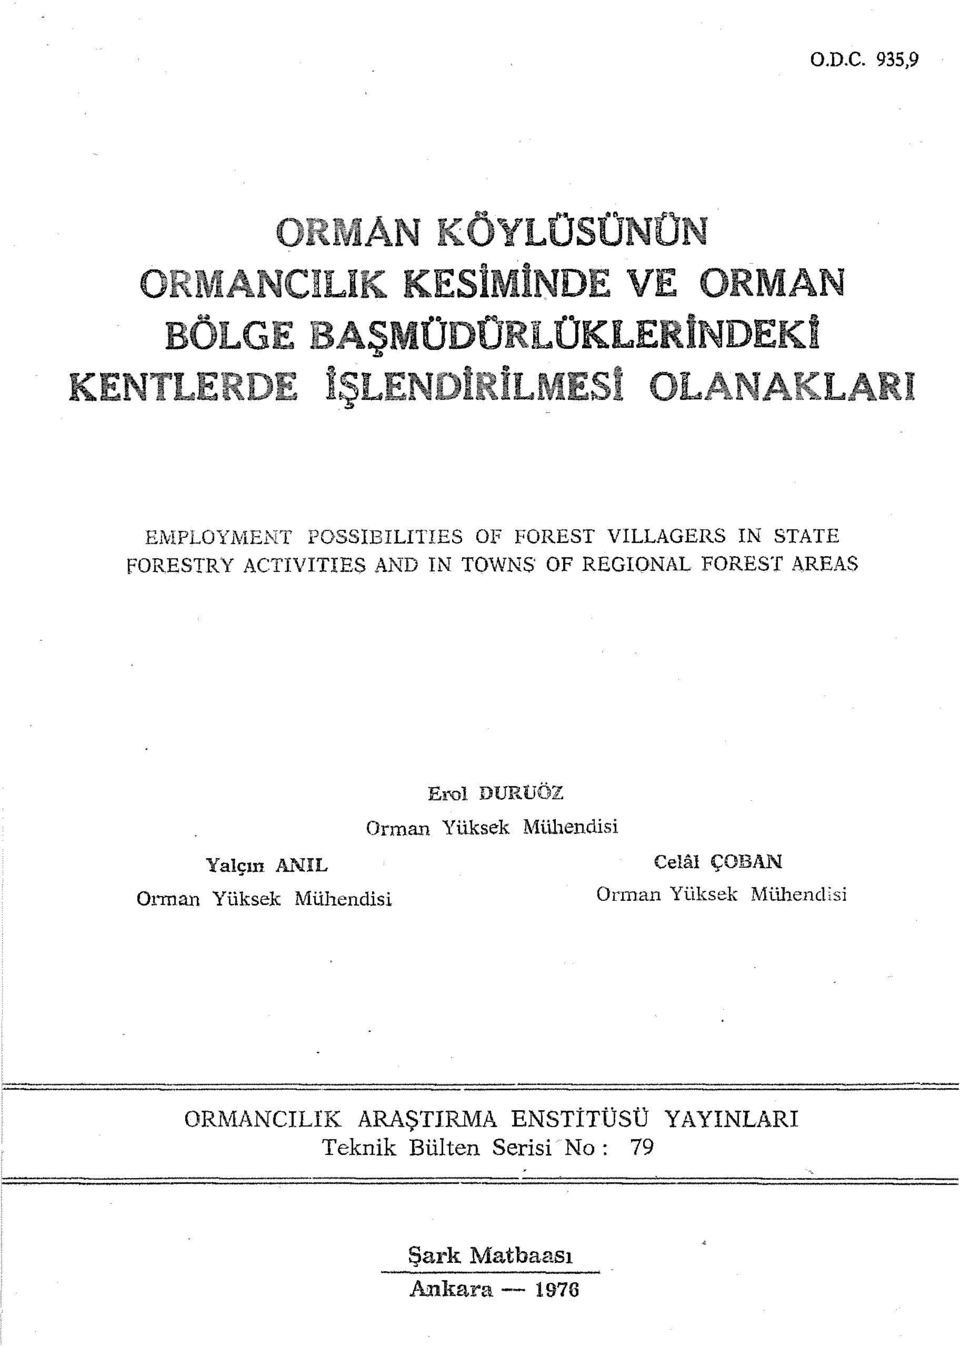 VILLAGERS IN STATE forestry ACTIVITIES AND IN TOWNS OF REGIONAL FOREST AREAS Eı'Ol DURlJÖZ Orman